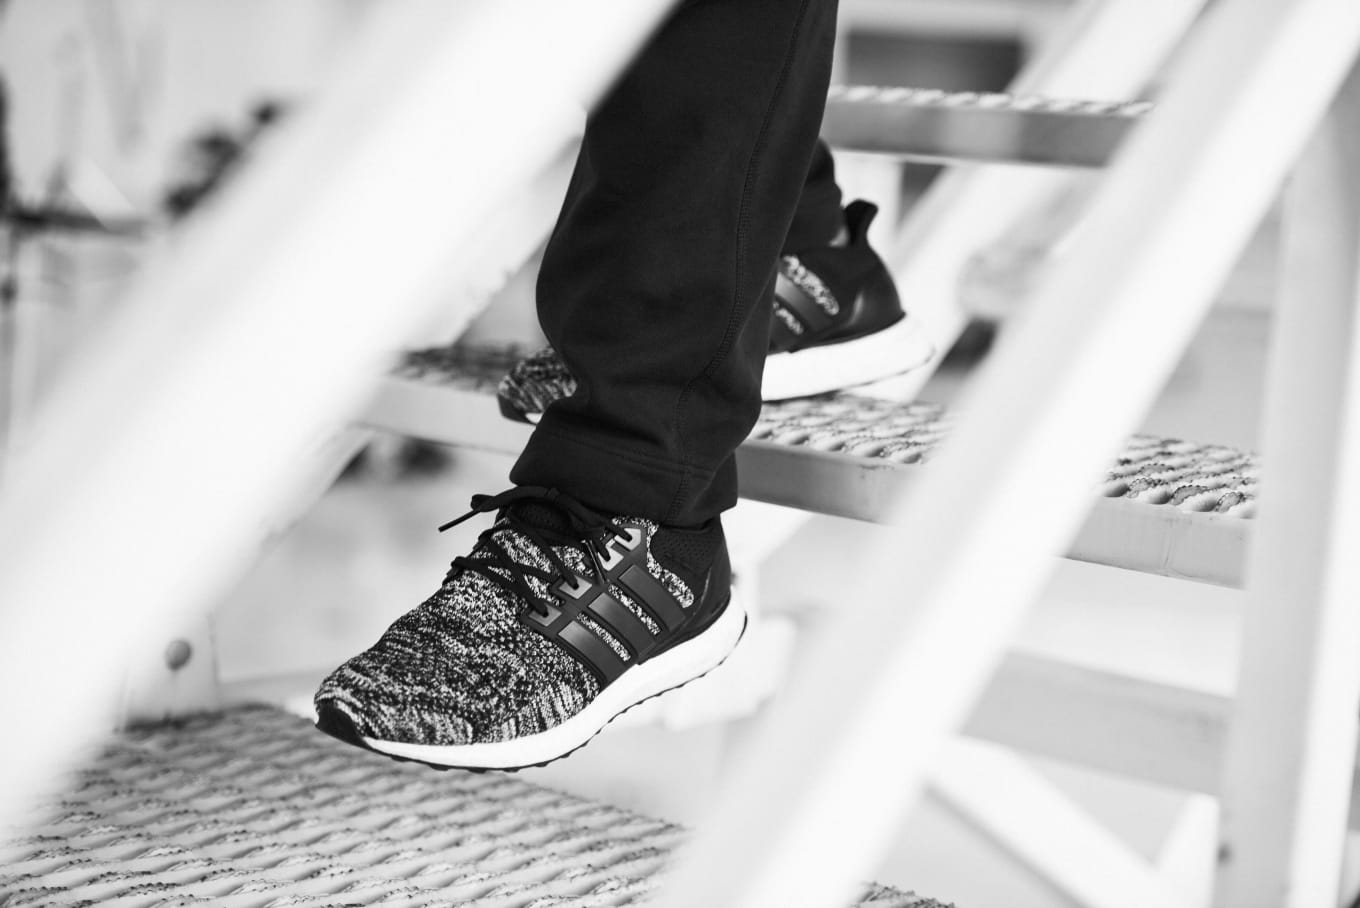 super popular 8f44e b3da9 Adidas Ultra Boost Reigning Champ Collab | Sole Collector